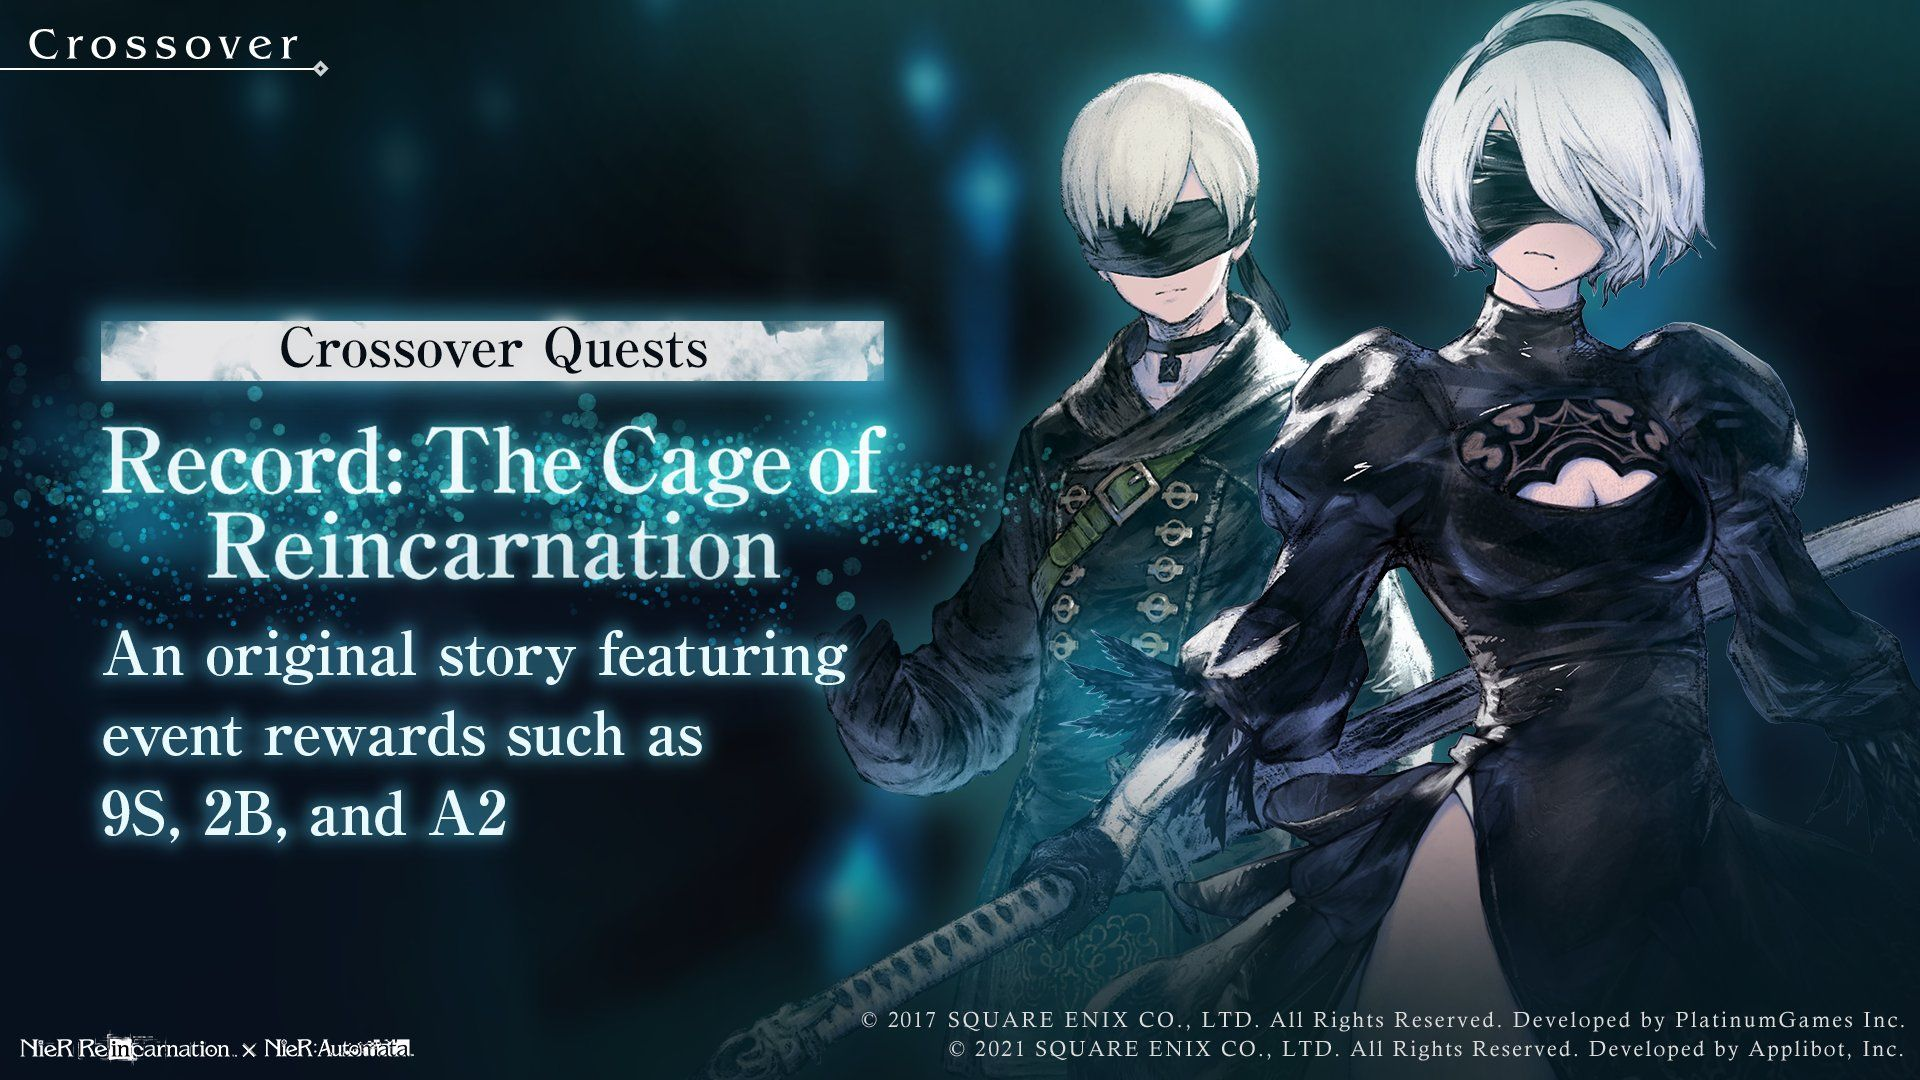 Nier Reincarnation adds limited time characters 2B, 9S and A2 as part of Nier Automata crossover